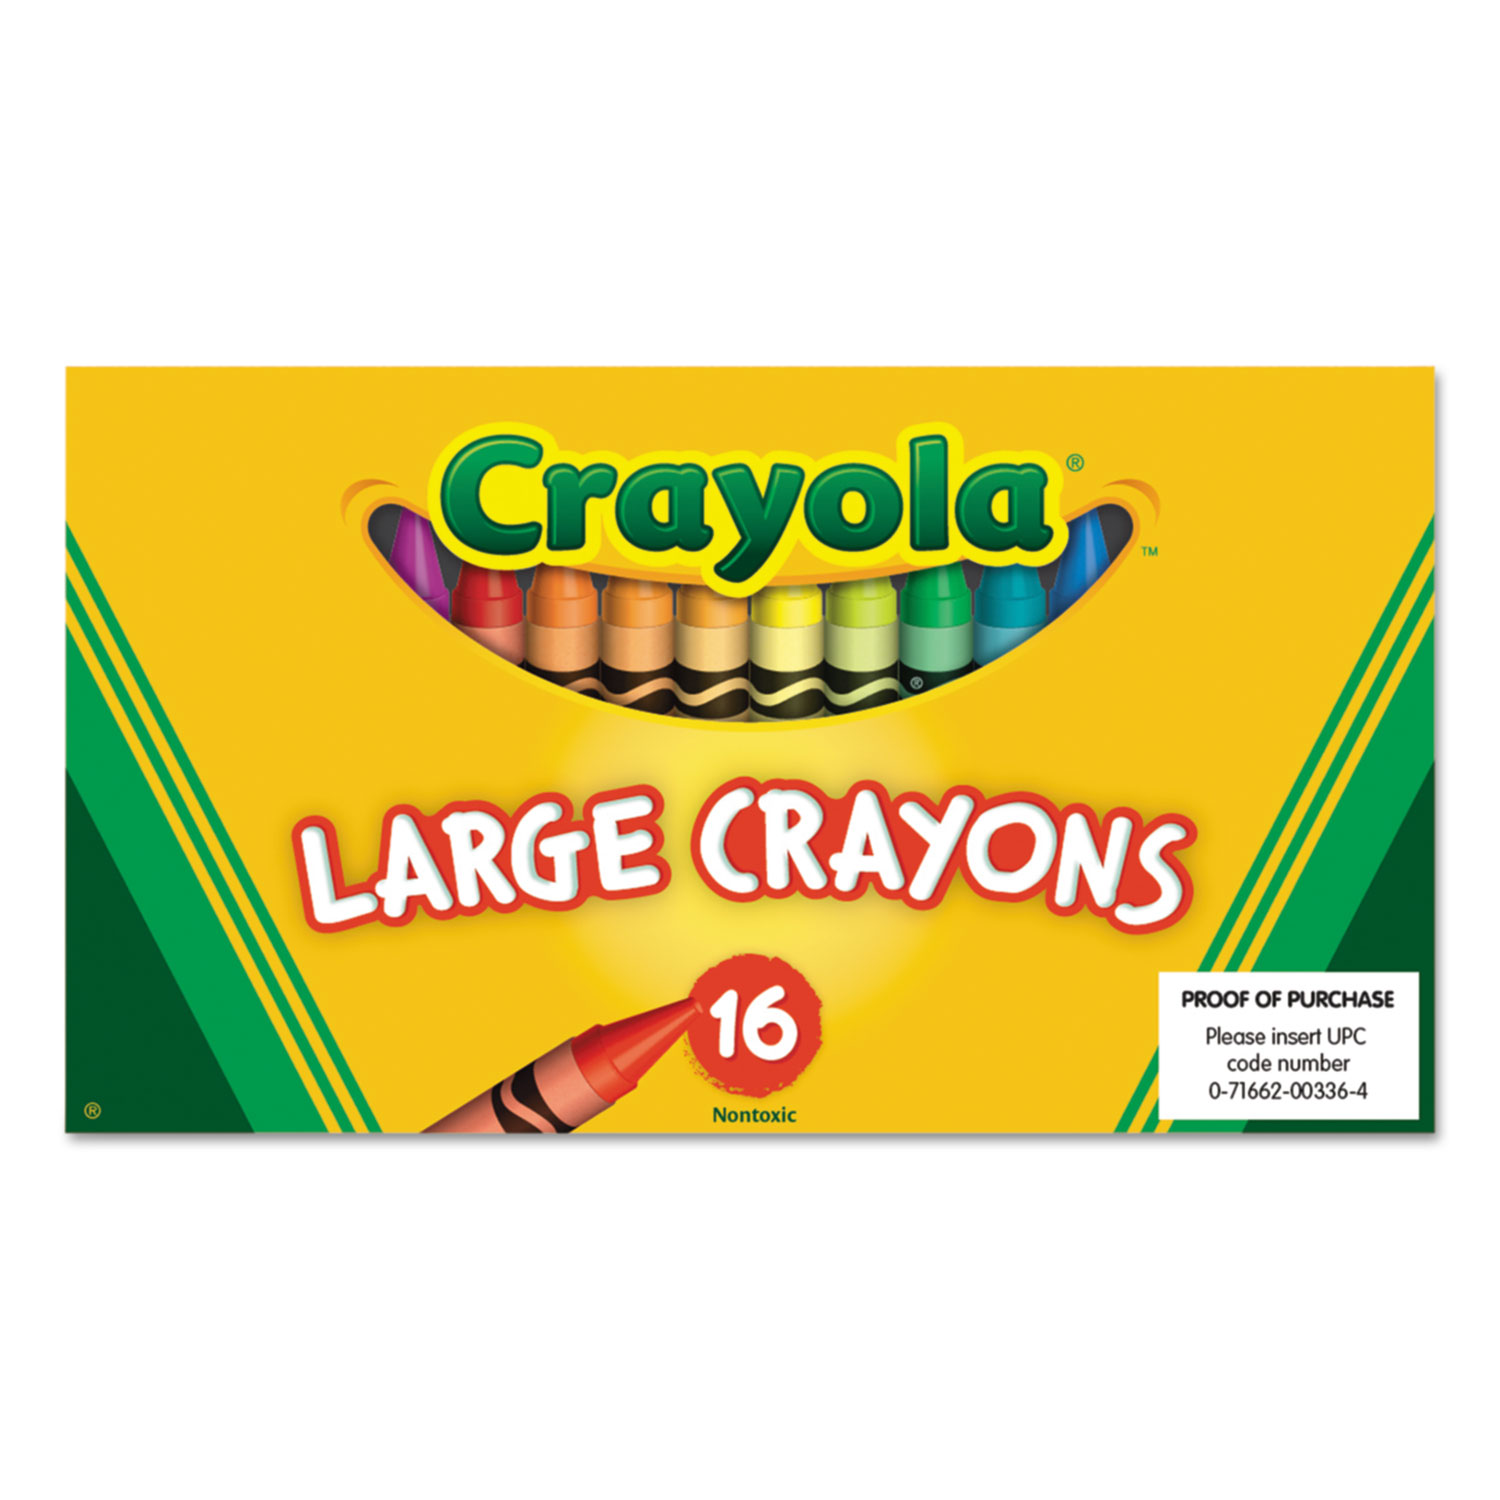 Large Crayons by Crayola® CYO520336 | OnTimeSupplies.com